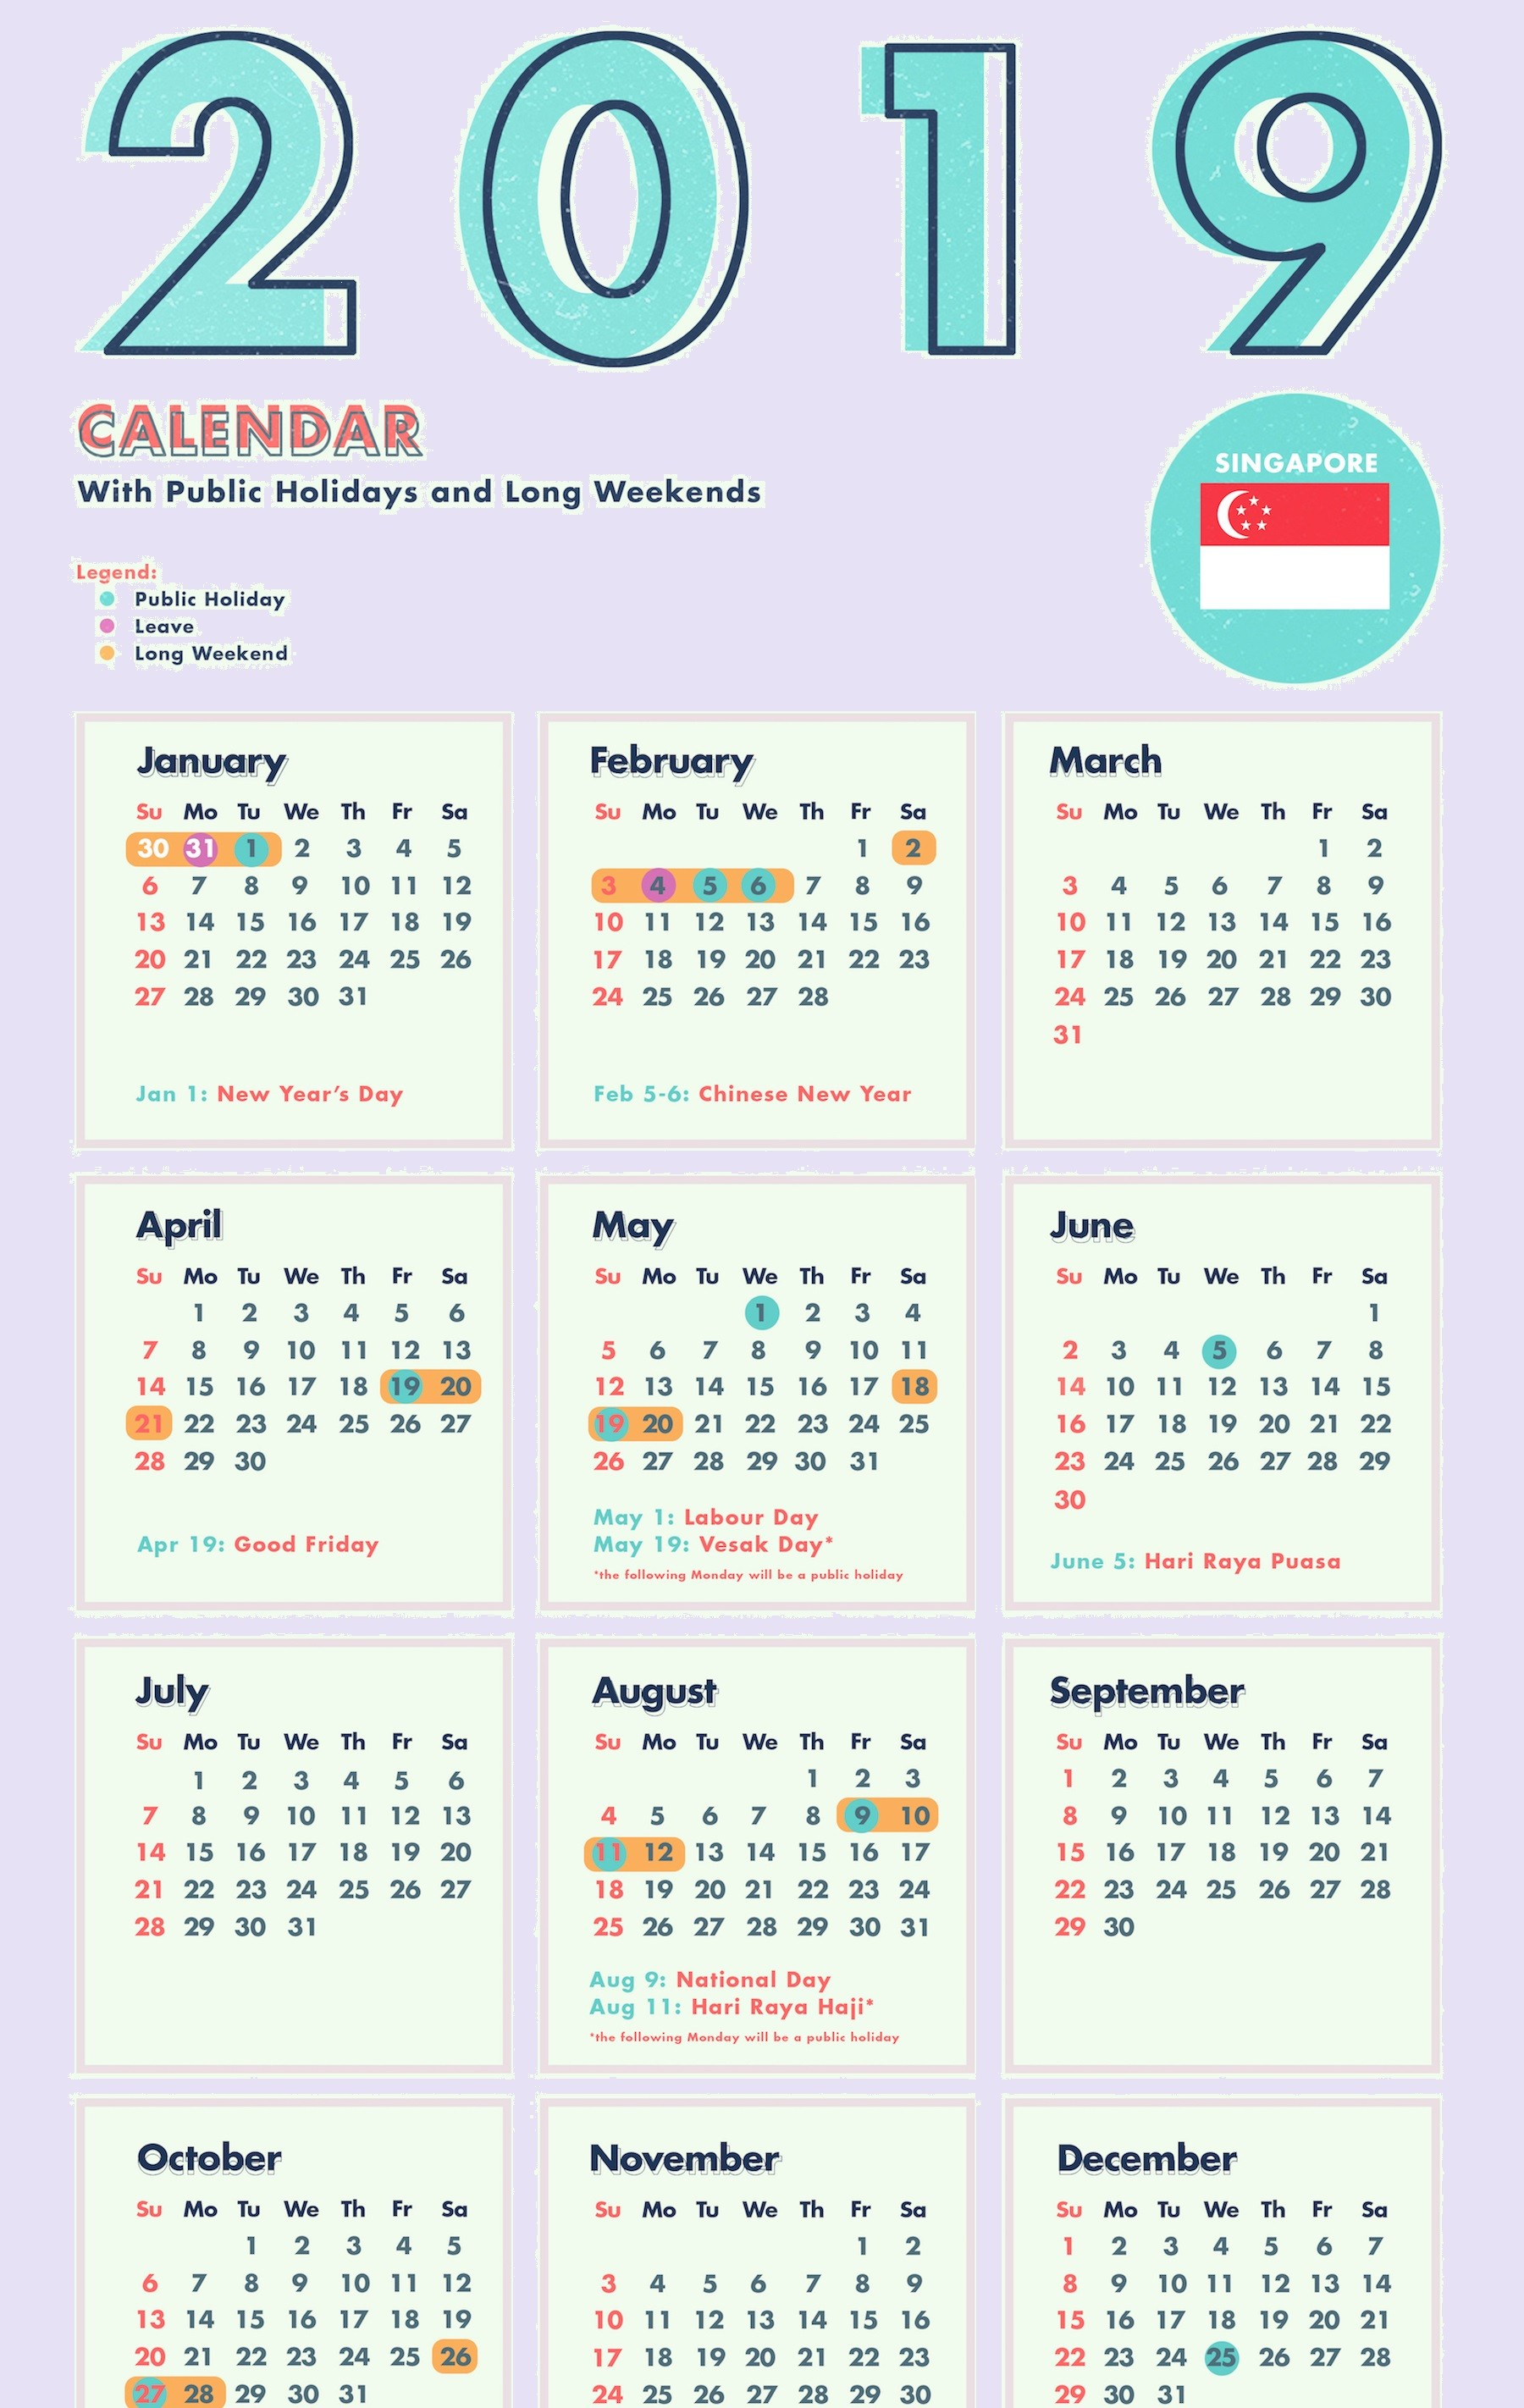 2019 Calendar In Excel with Holidays Recientes New 50 Design 2019 Calendar Excel 2018 Calendar Hk Shoot Design Of 2019 Calendar In Excel with Holidays Actual 2019 Calendar Excel with Holidays 2015 2016 2017 Calendar 4 Three